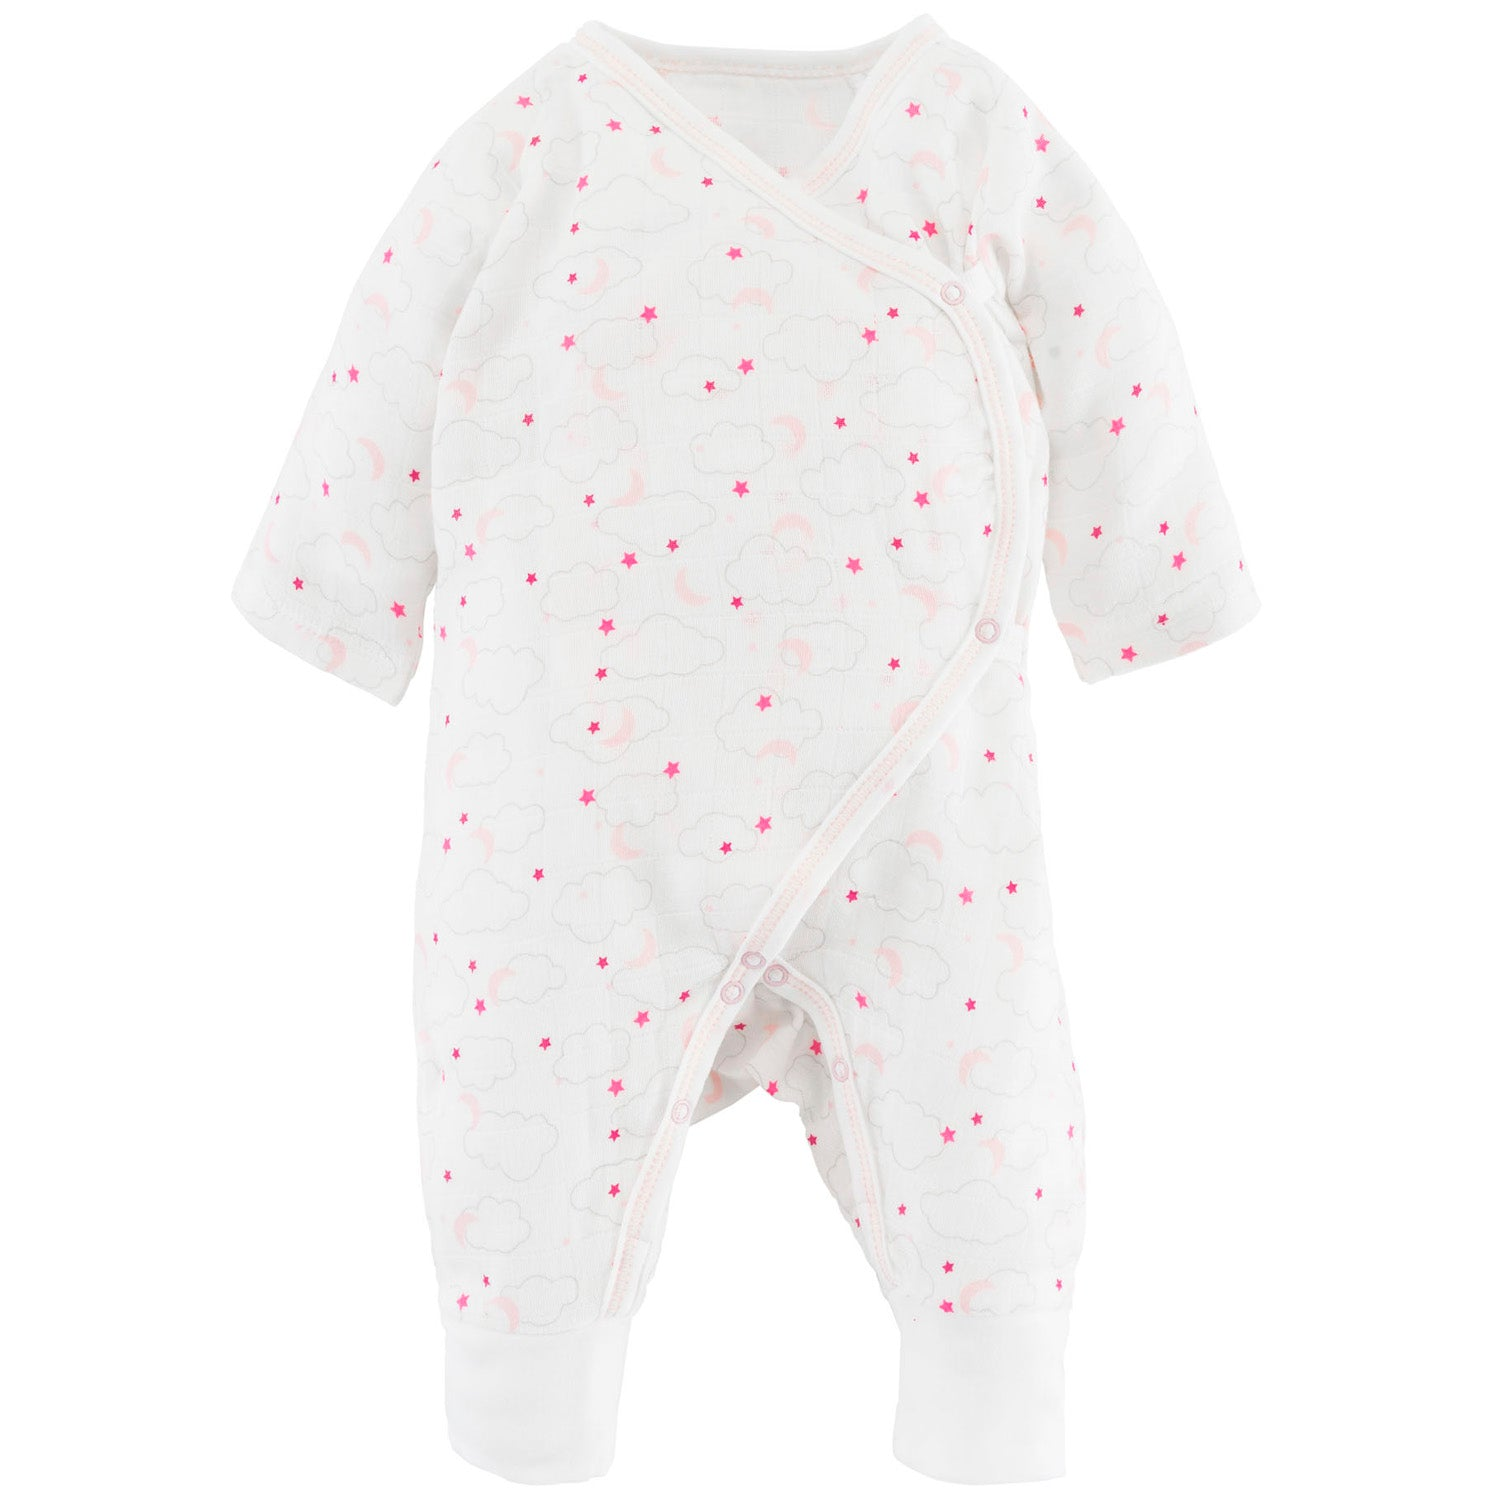 Under the Nile Organic Muslin Side Snap Kimono Romper - Pink Starry Night